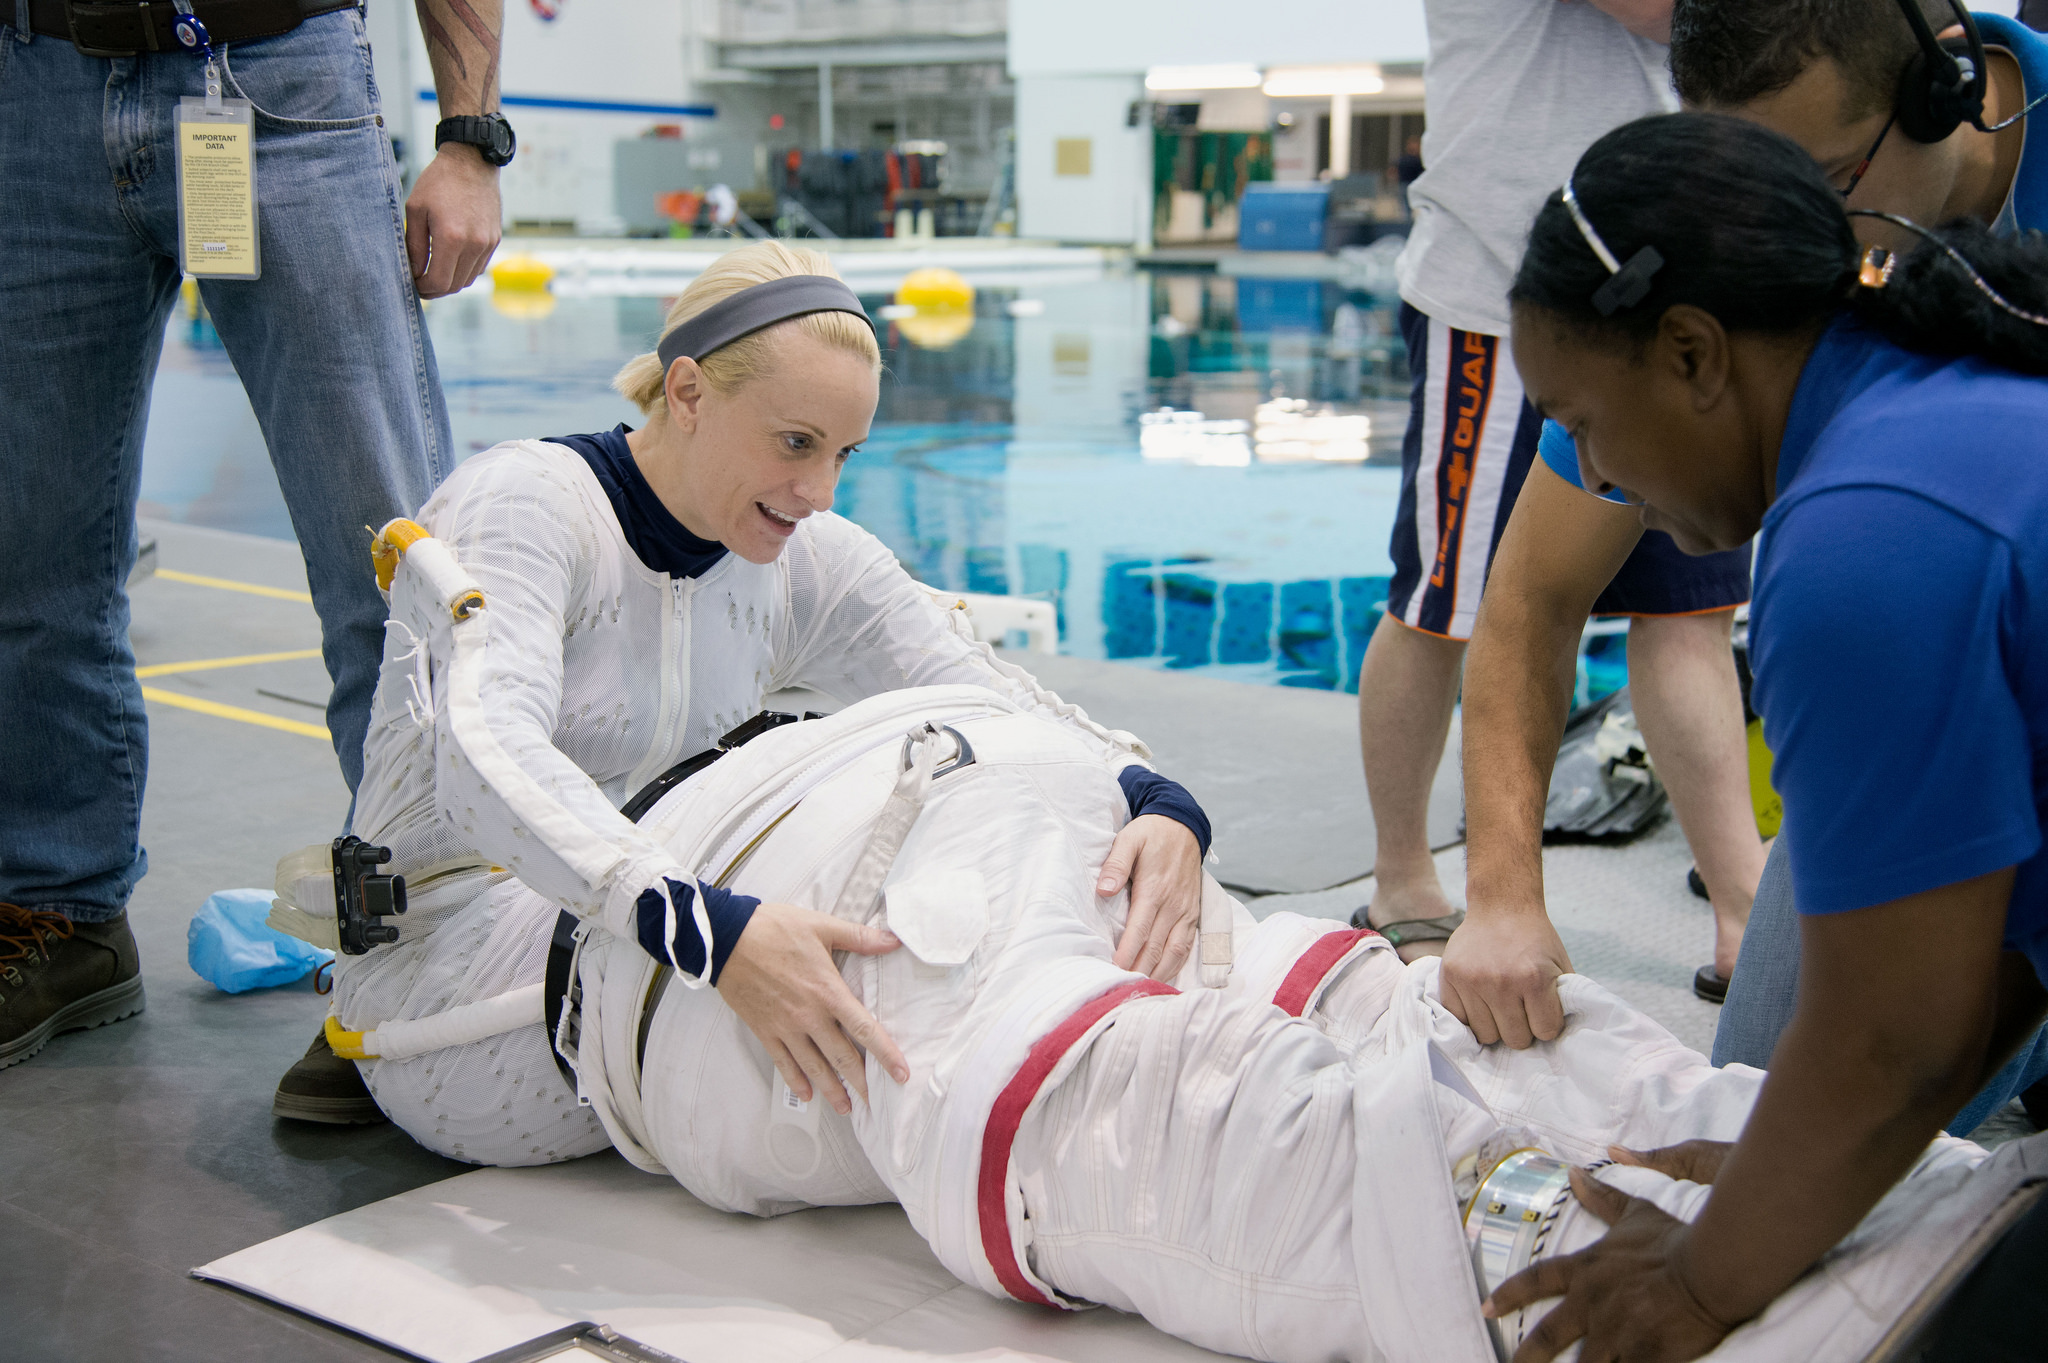 Kate Rubins undergoes spacewalk training at NASA's Neutral Buoyancy Laboratory.